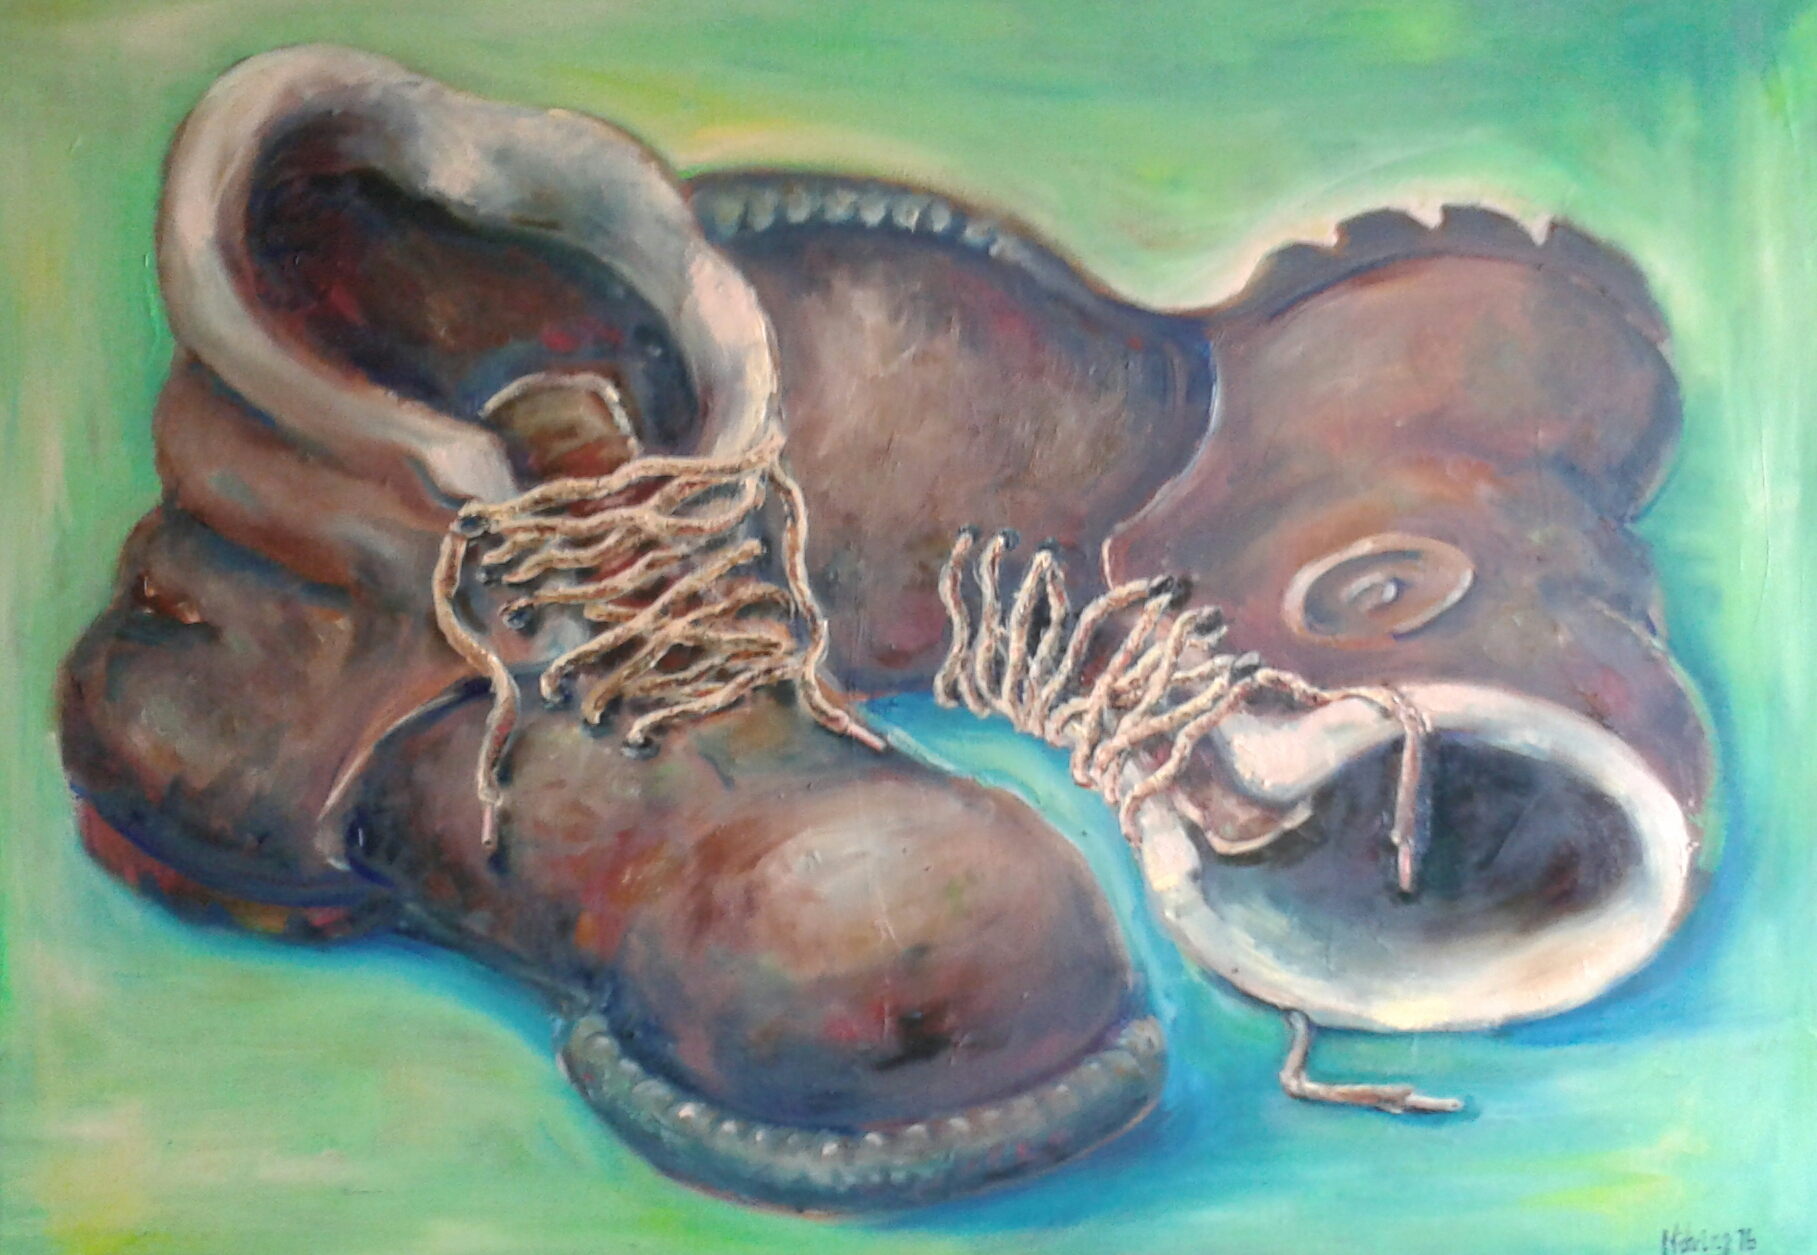 These Boots are made for Walking, 50 x 70 cm, Öl auf Leinwand